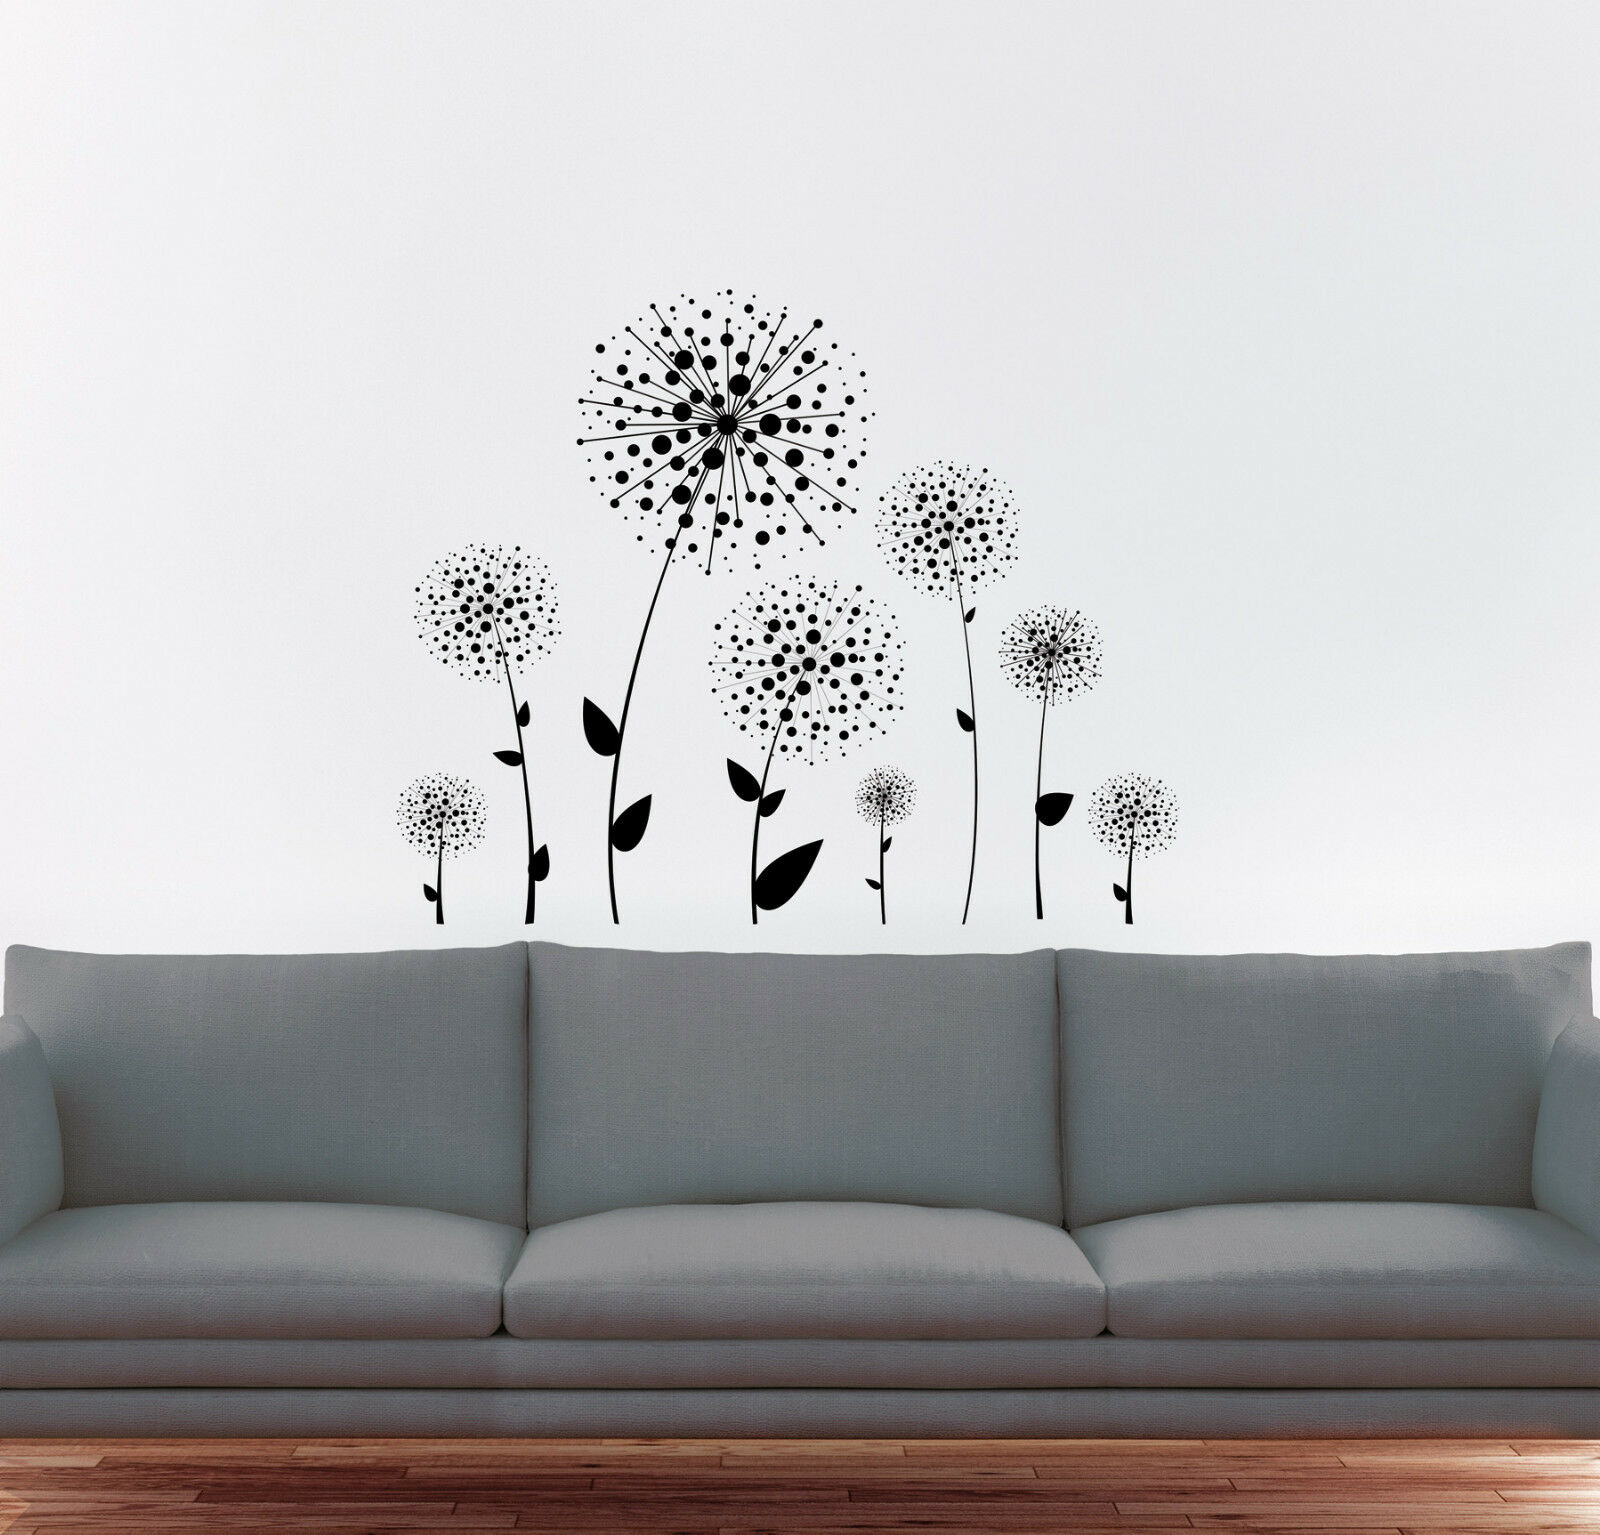 xxl wandaufkleber set 16 x pusteblume aufkleber sticker. Black Bedroom Furniture Sets. Home Design Ideas